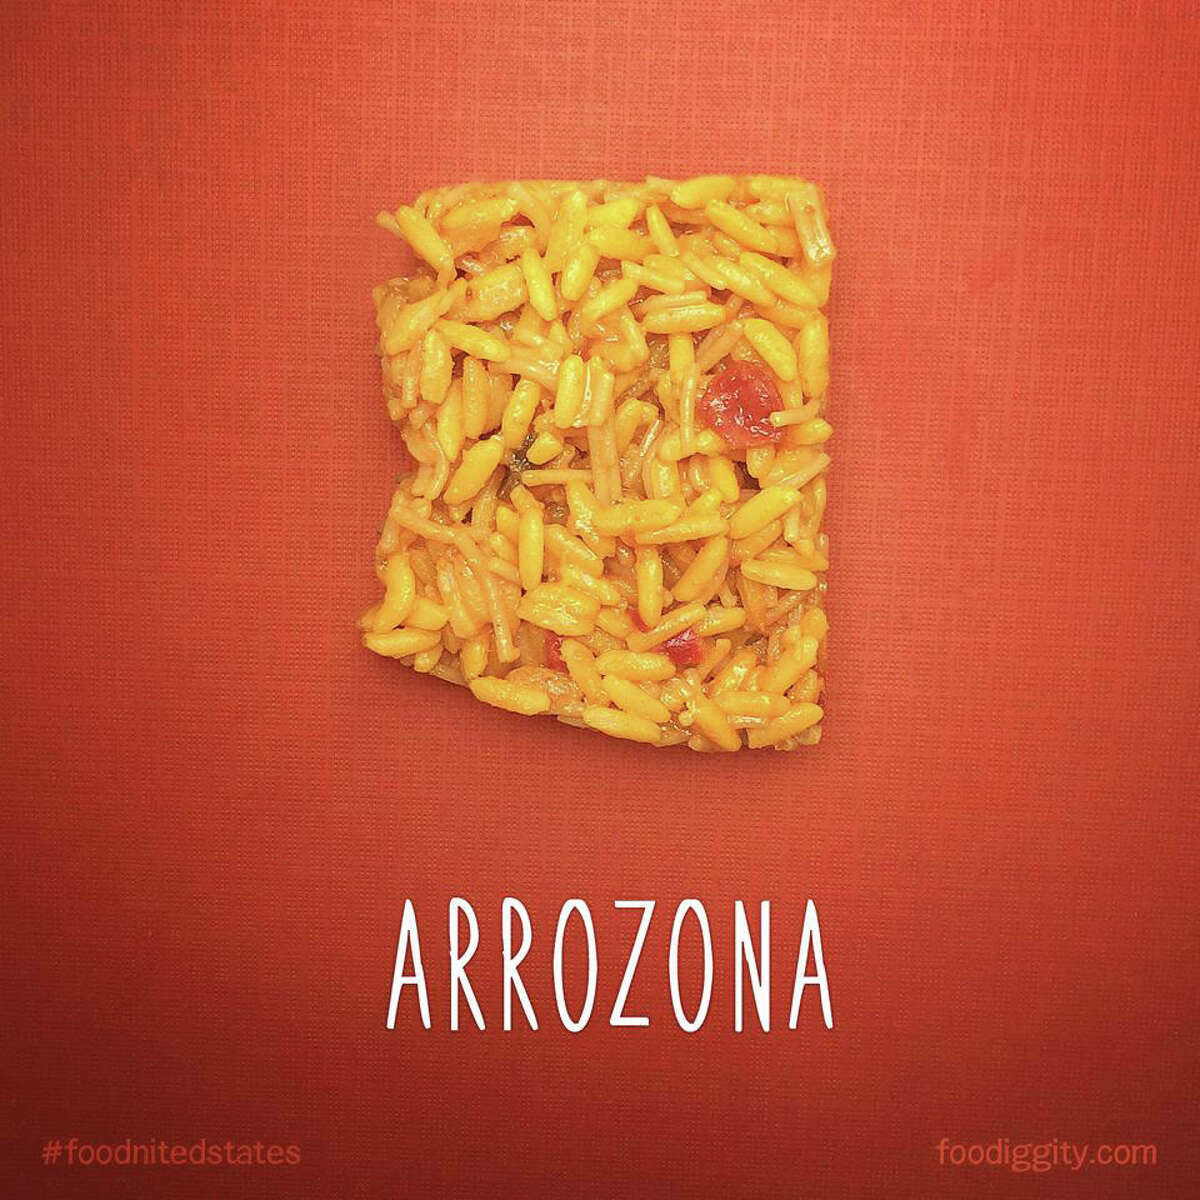 Chris Durso and his 8-year-old son brought puns into the kitchen with these foods made into the shape of U.S. states.